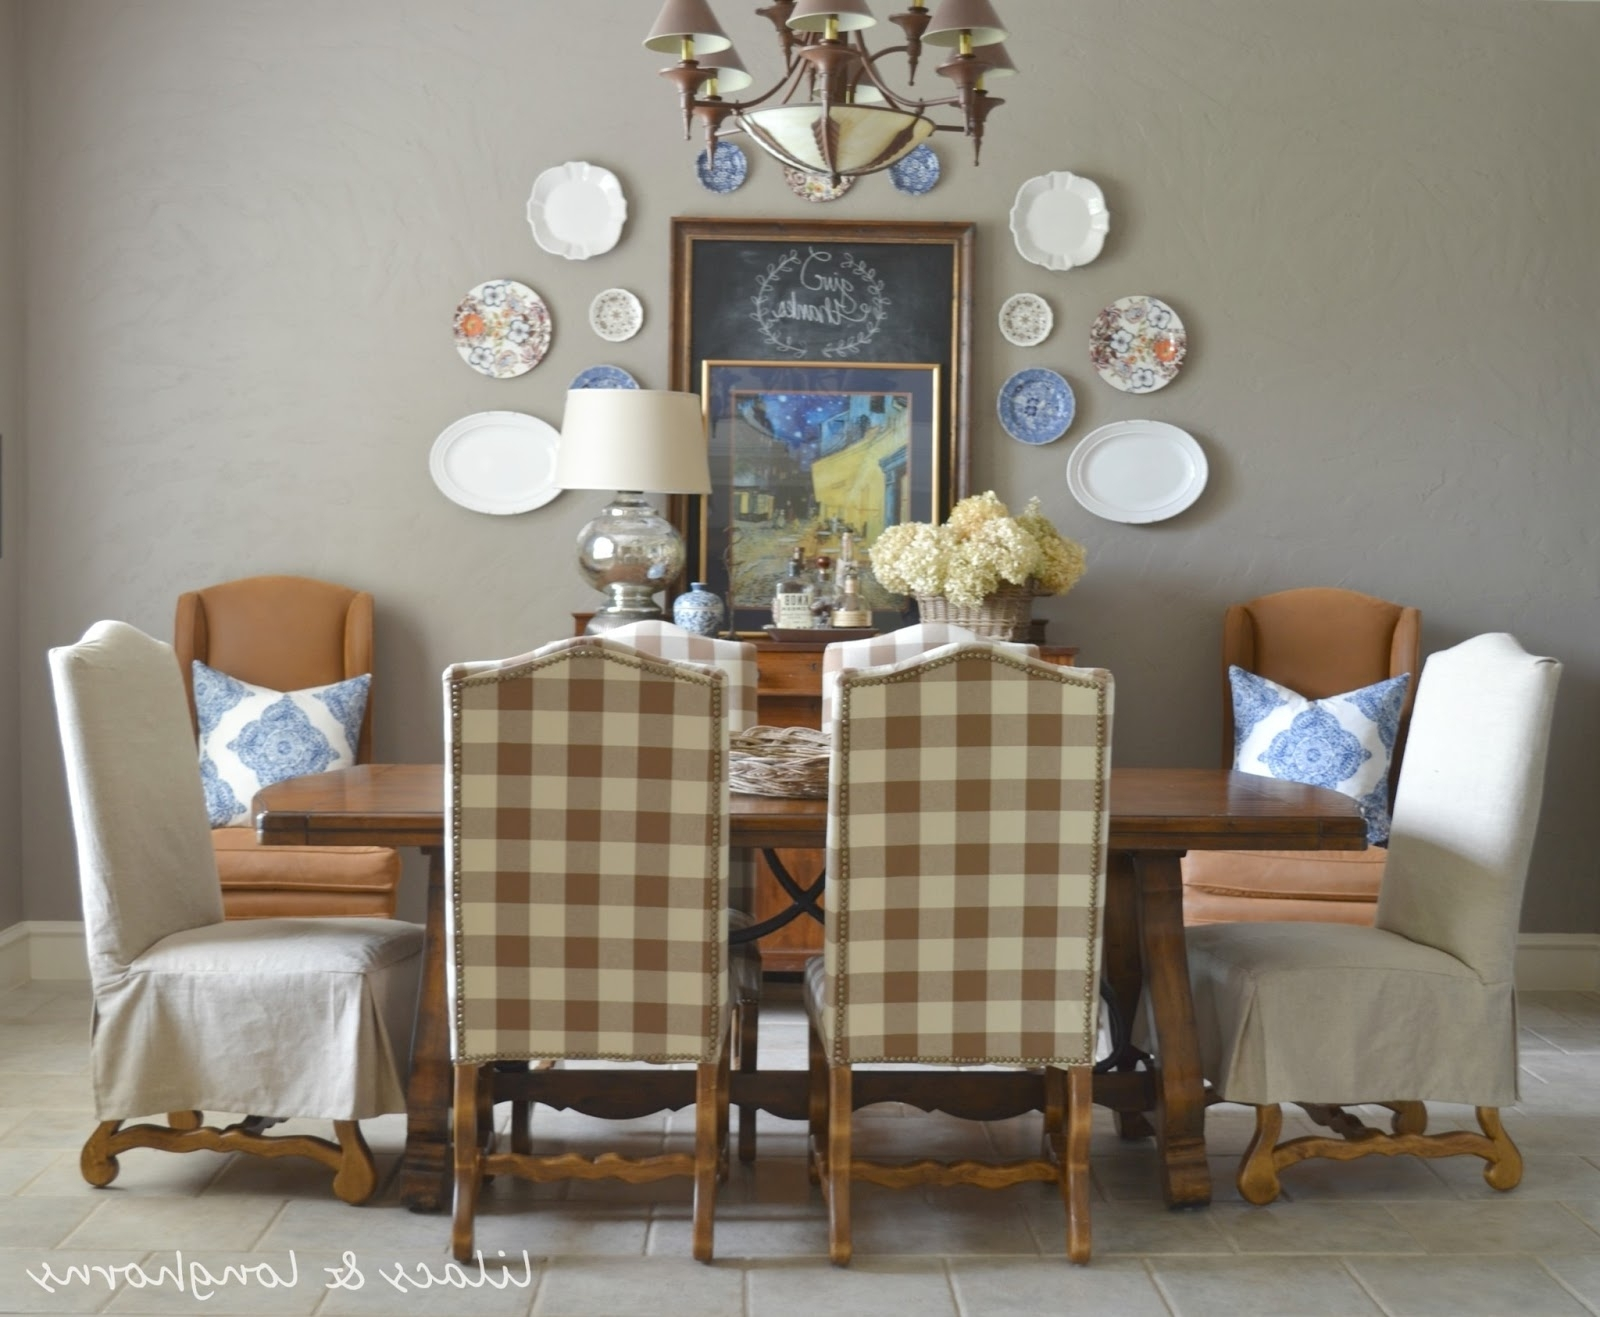 2018 Tips For Re Upholstering Dining Chairs – Lilacs And Longhornslilacs In Dining Room Chairs (View 2 of 25)